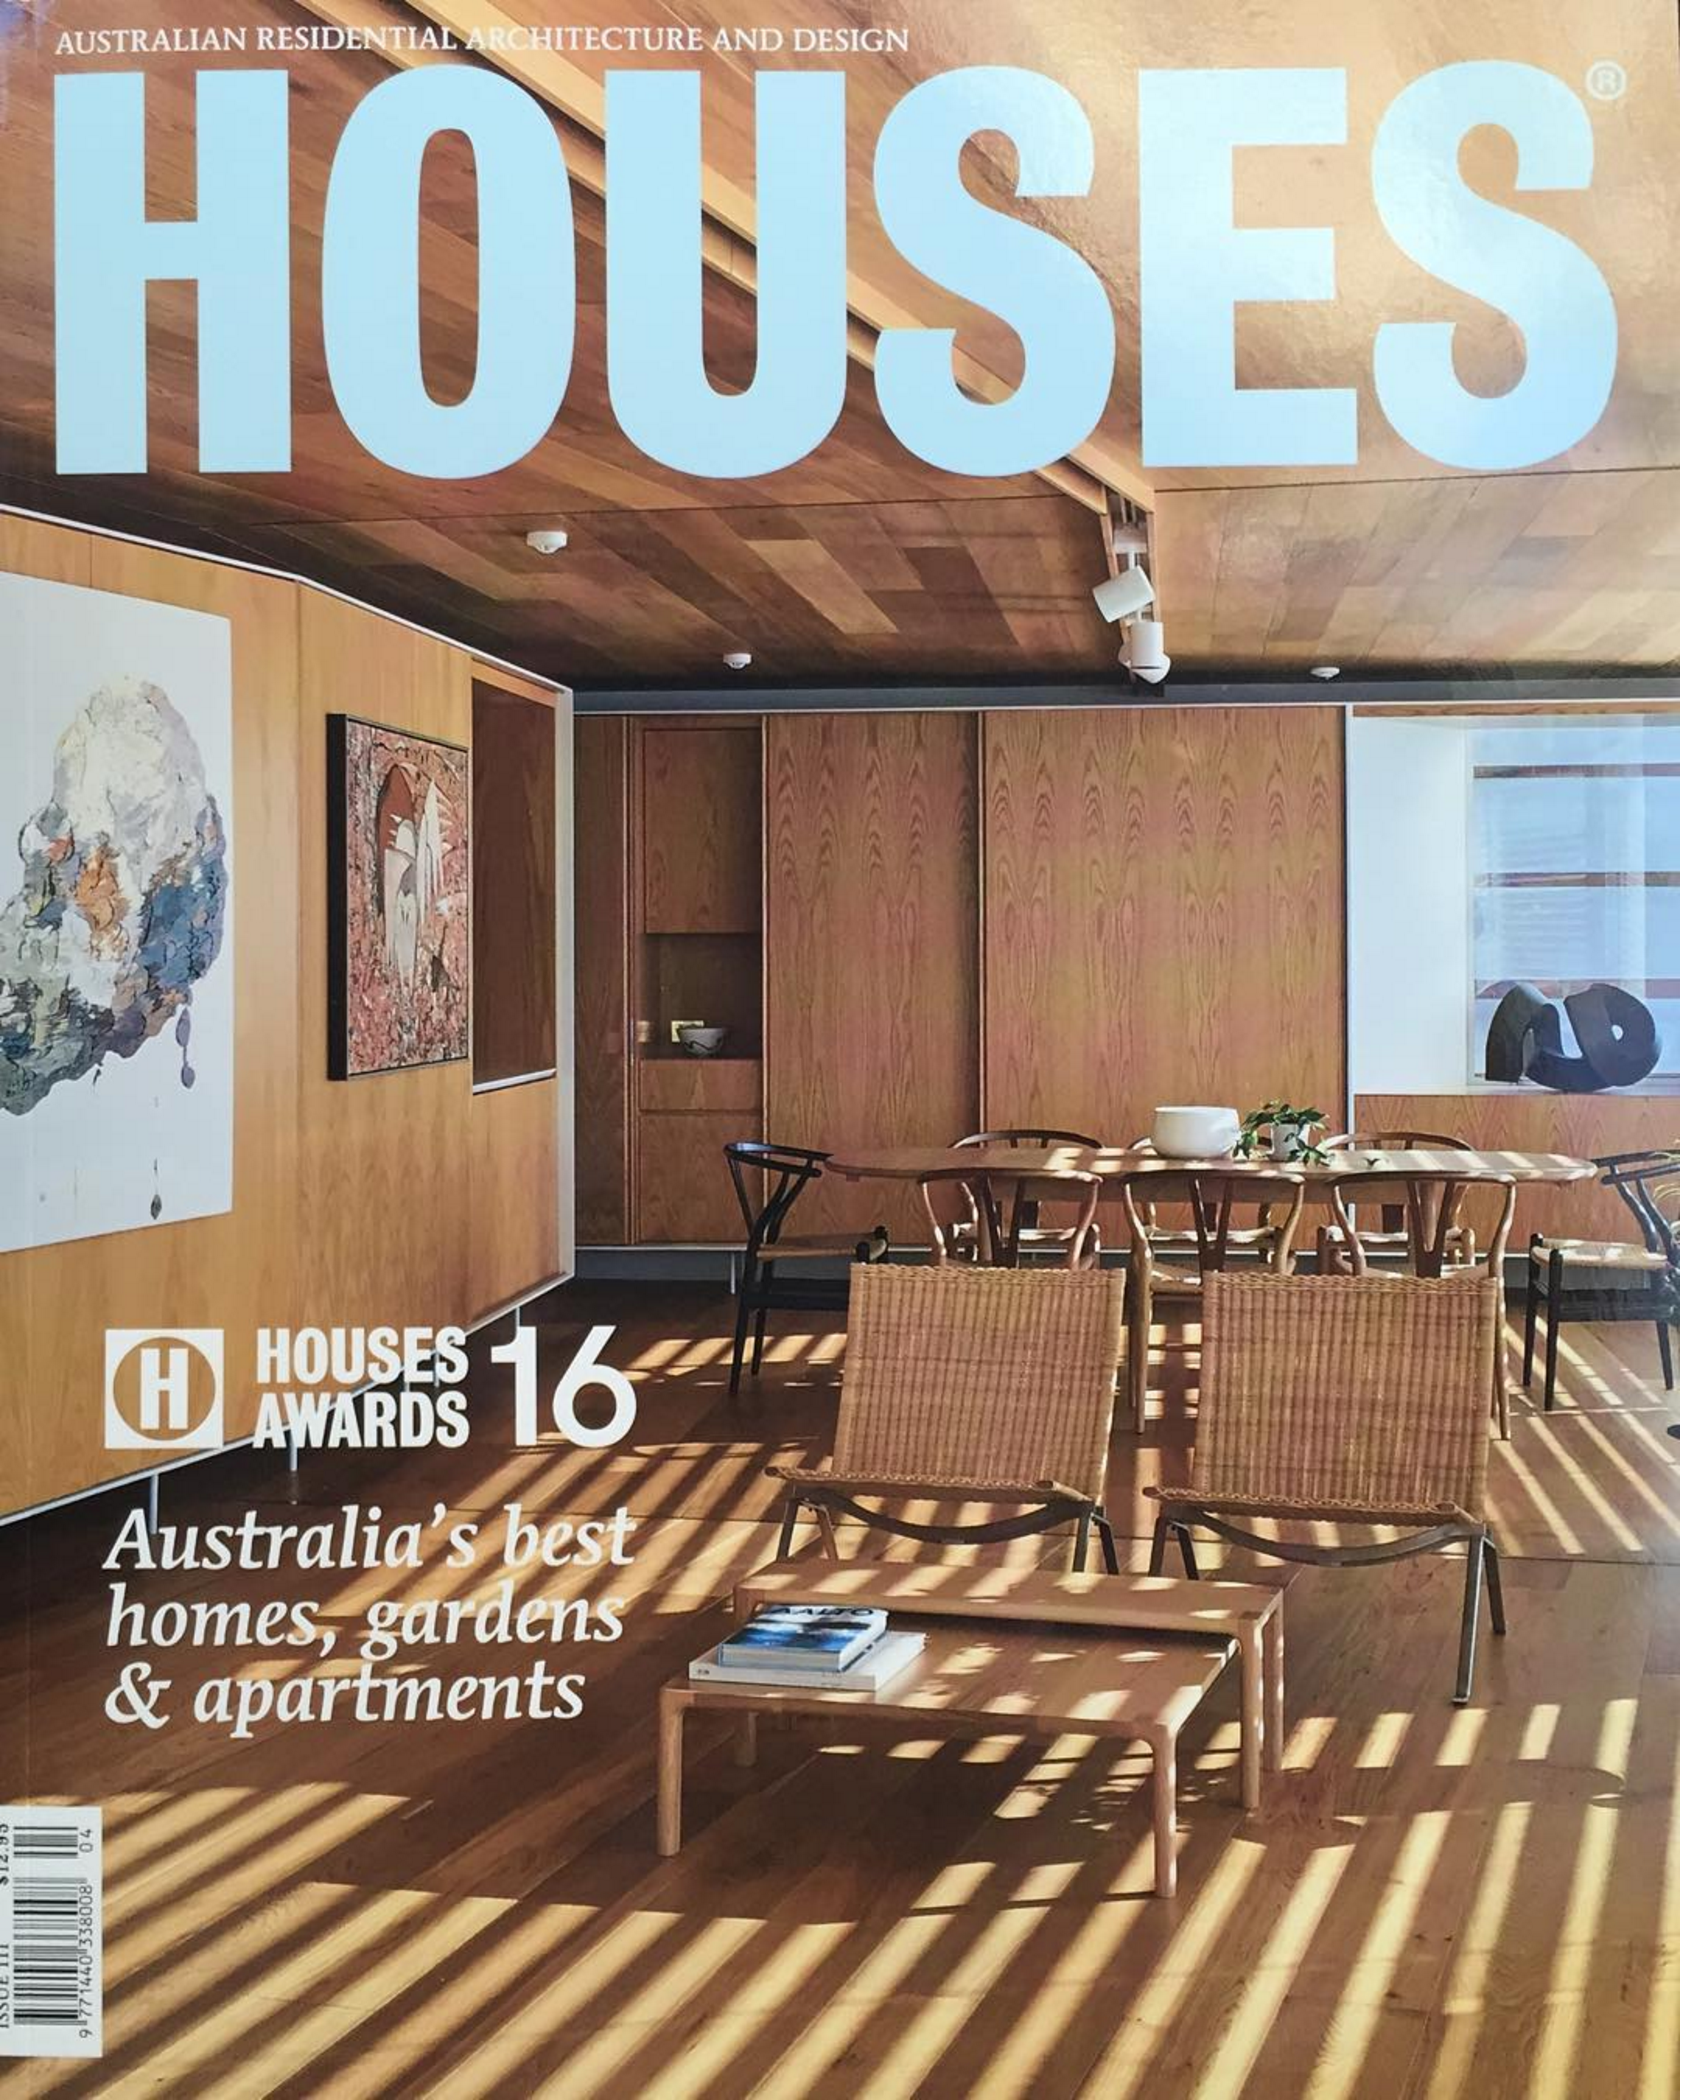 News_Houses_Darling Point Apartment_01